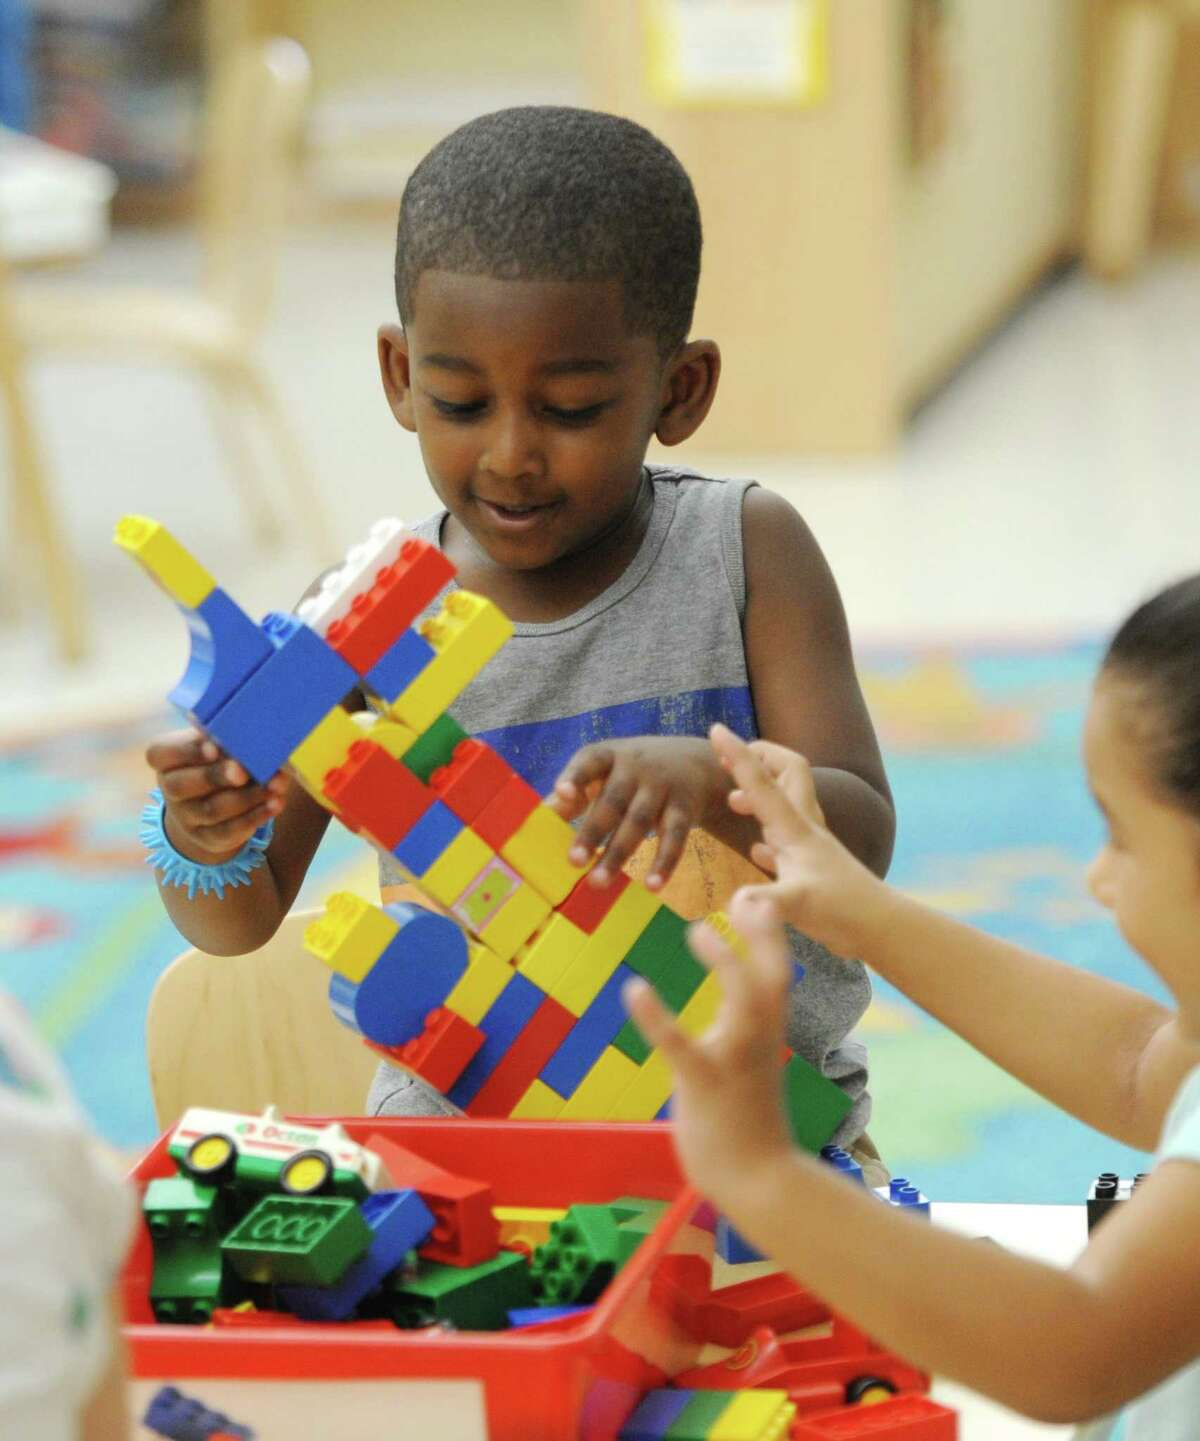 """Preschool students Jeffrey P. and Emma R. build a Lego tower during preschool welcome week at the Children's Learning Centers of Fairfield County William Pitt branch in Stamford, Conn. Wednesday, Aug. 22, 2018. 169 new students were eased into the school day routine with a two-hour """"transition day"""" on Wednesday, followed by a three and a half hour day Thursday and a six hour day Friday."""